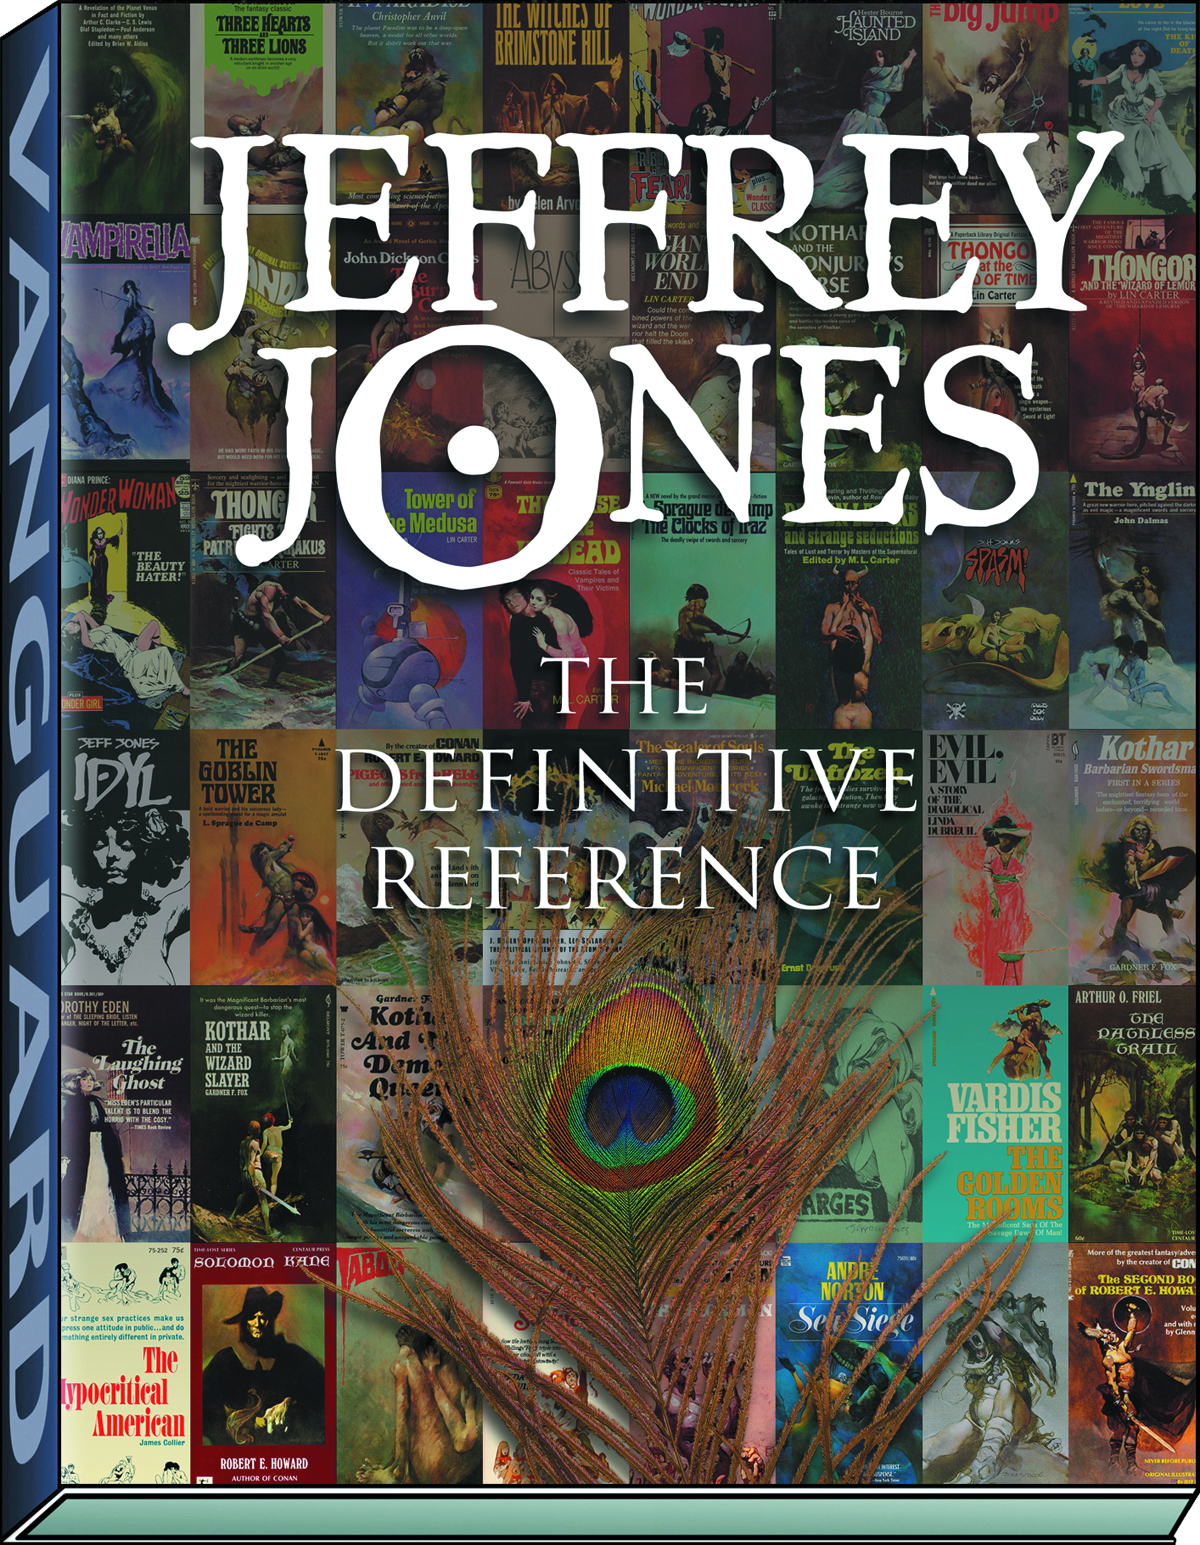 JEFFREY JONES DEFINITIVE REFERENCE DLX SLIPCASED ED